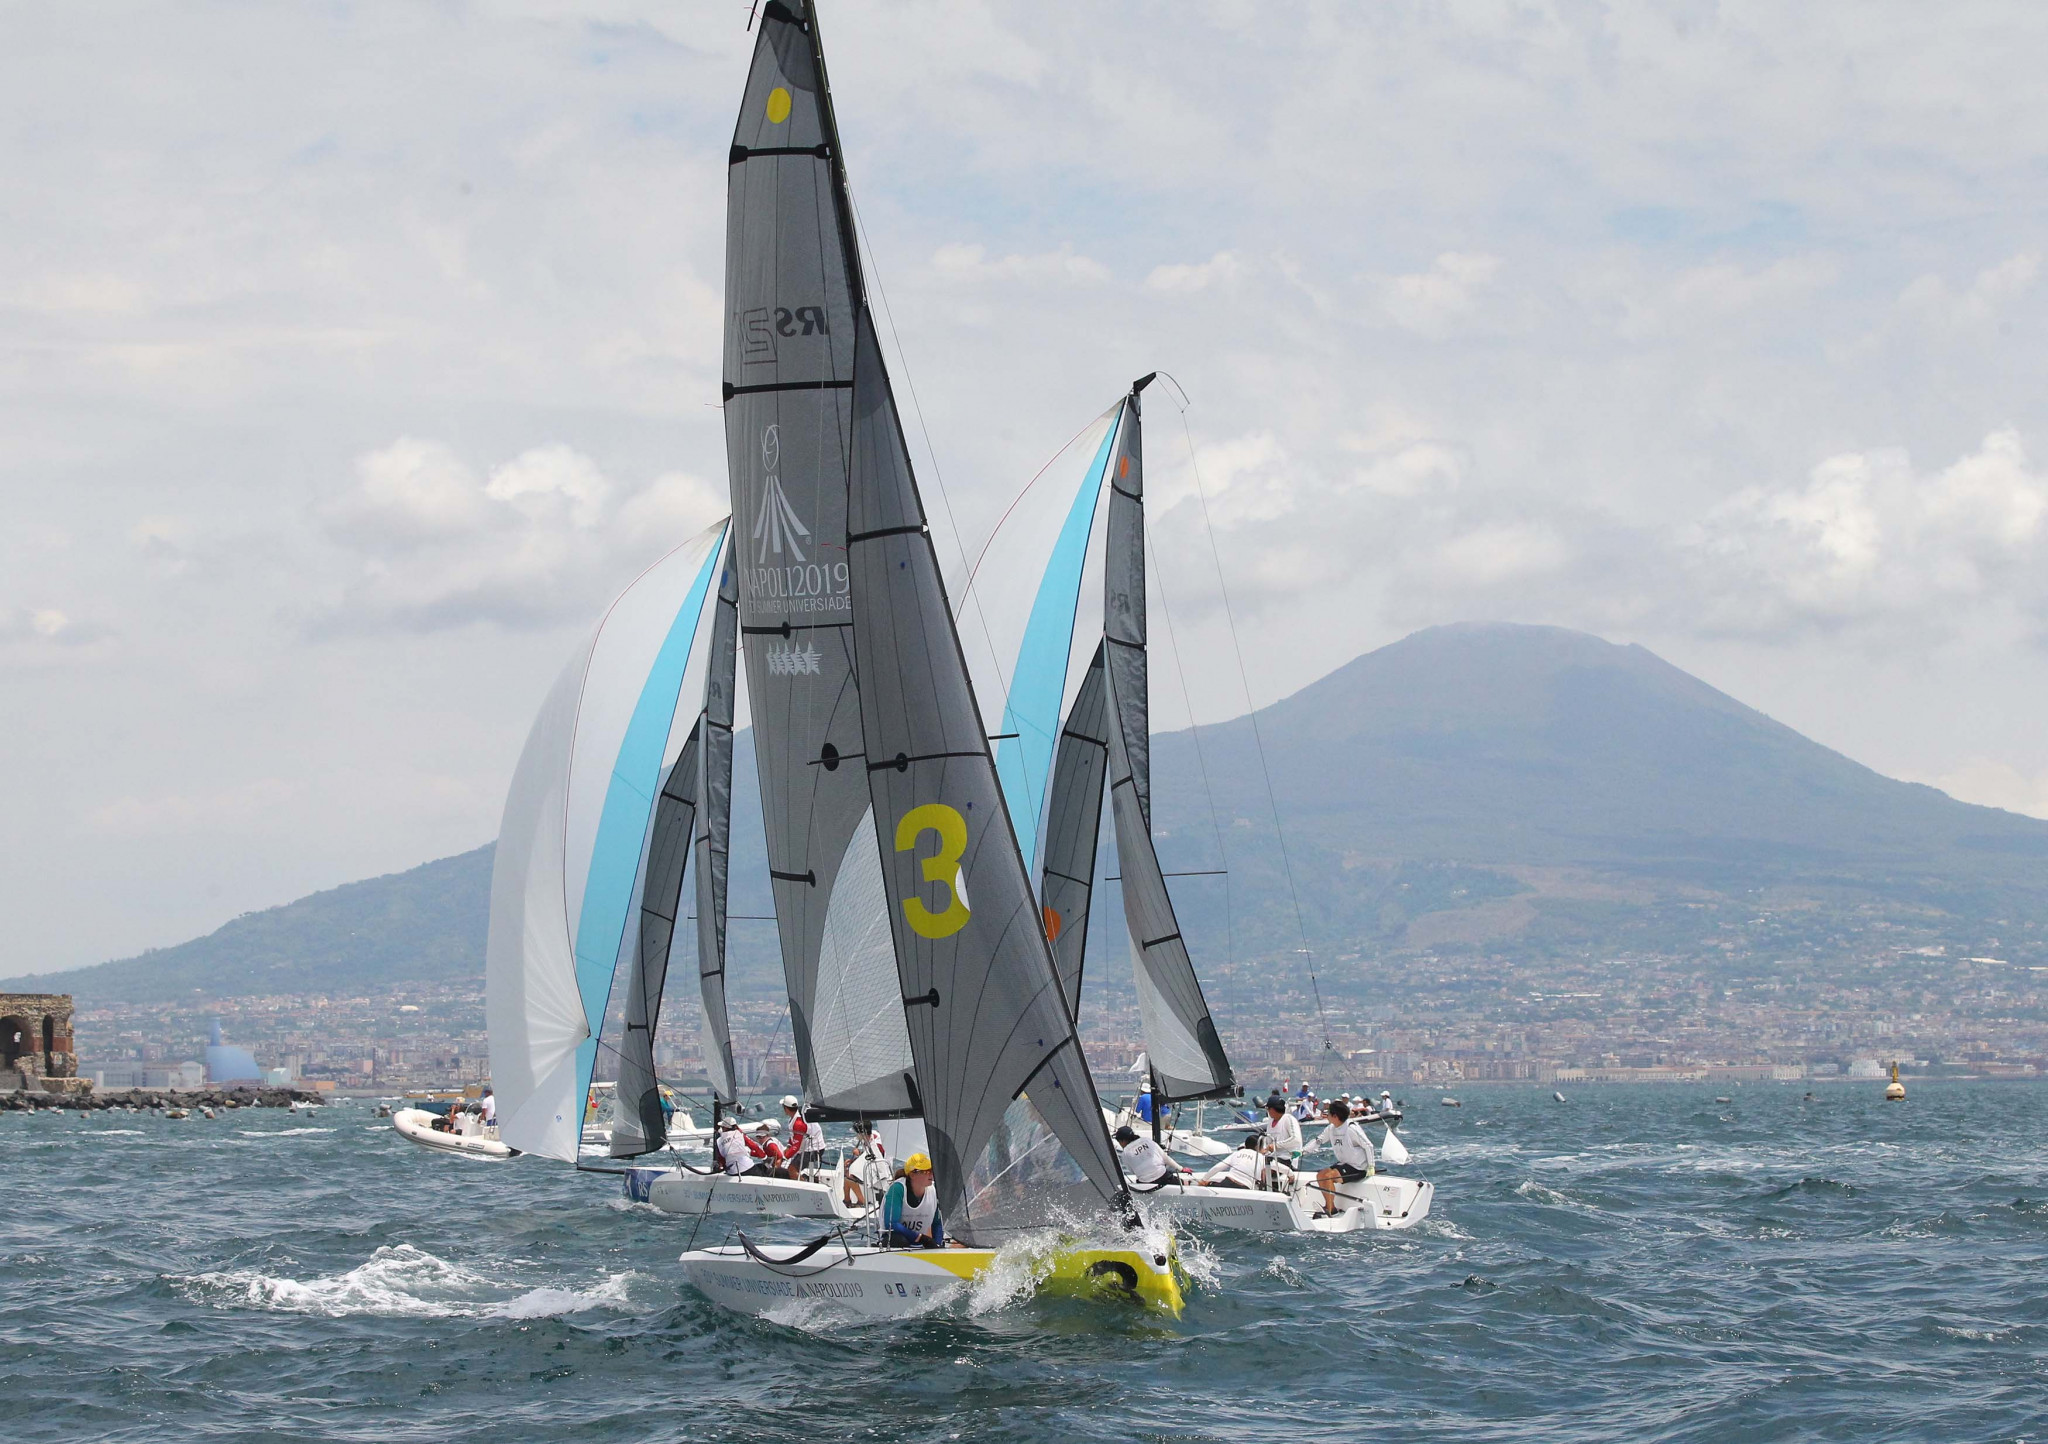 Sailors compete in the mixed fleet racing in the Bay of Naples ©Naples 2019